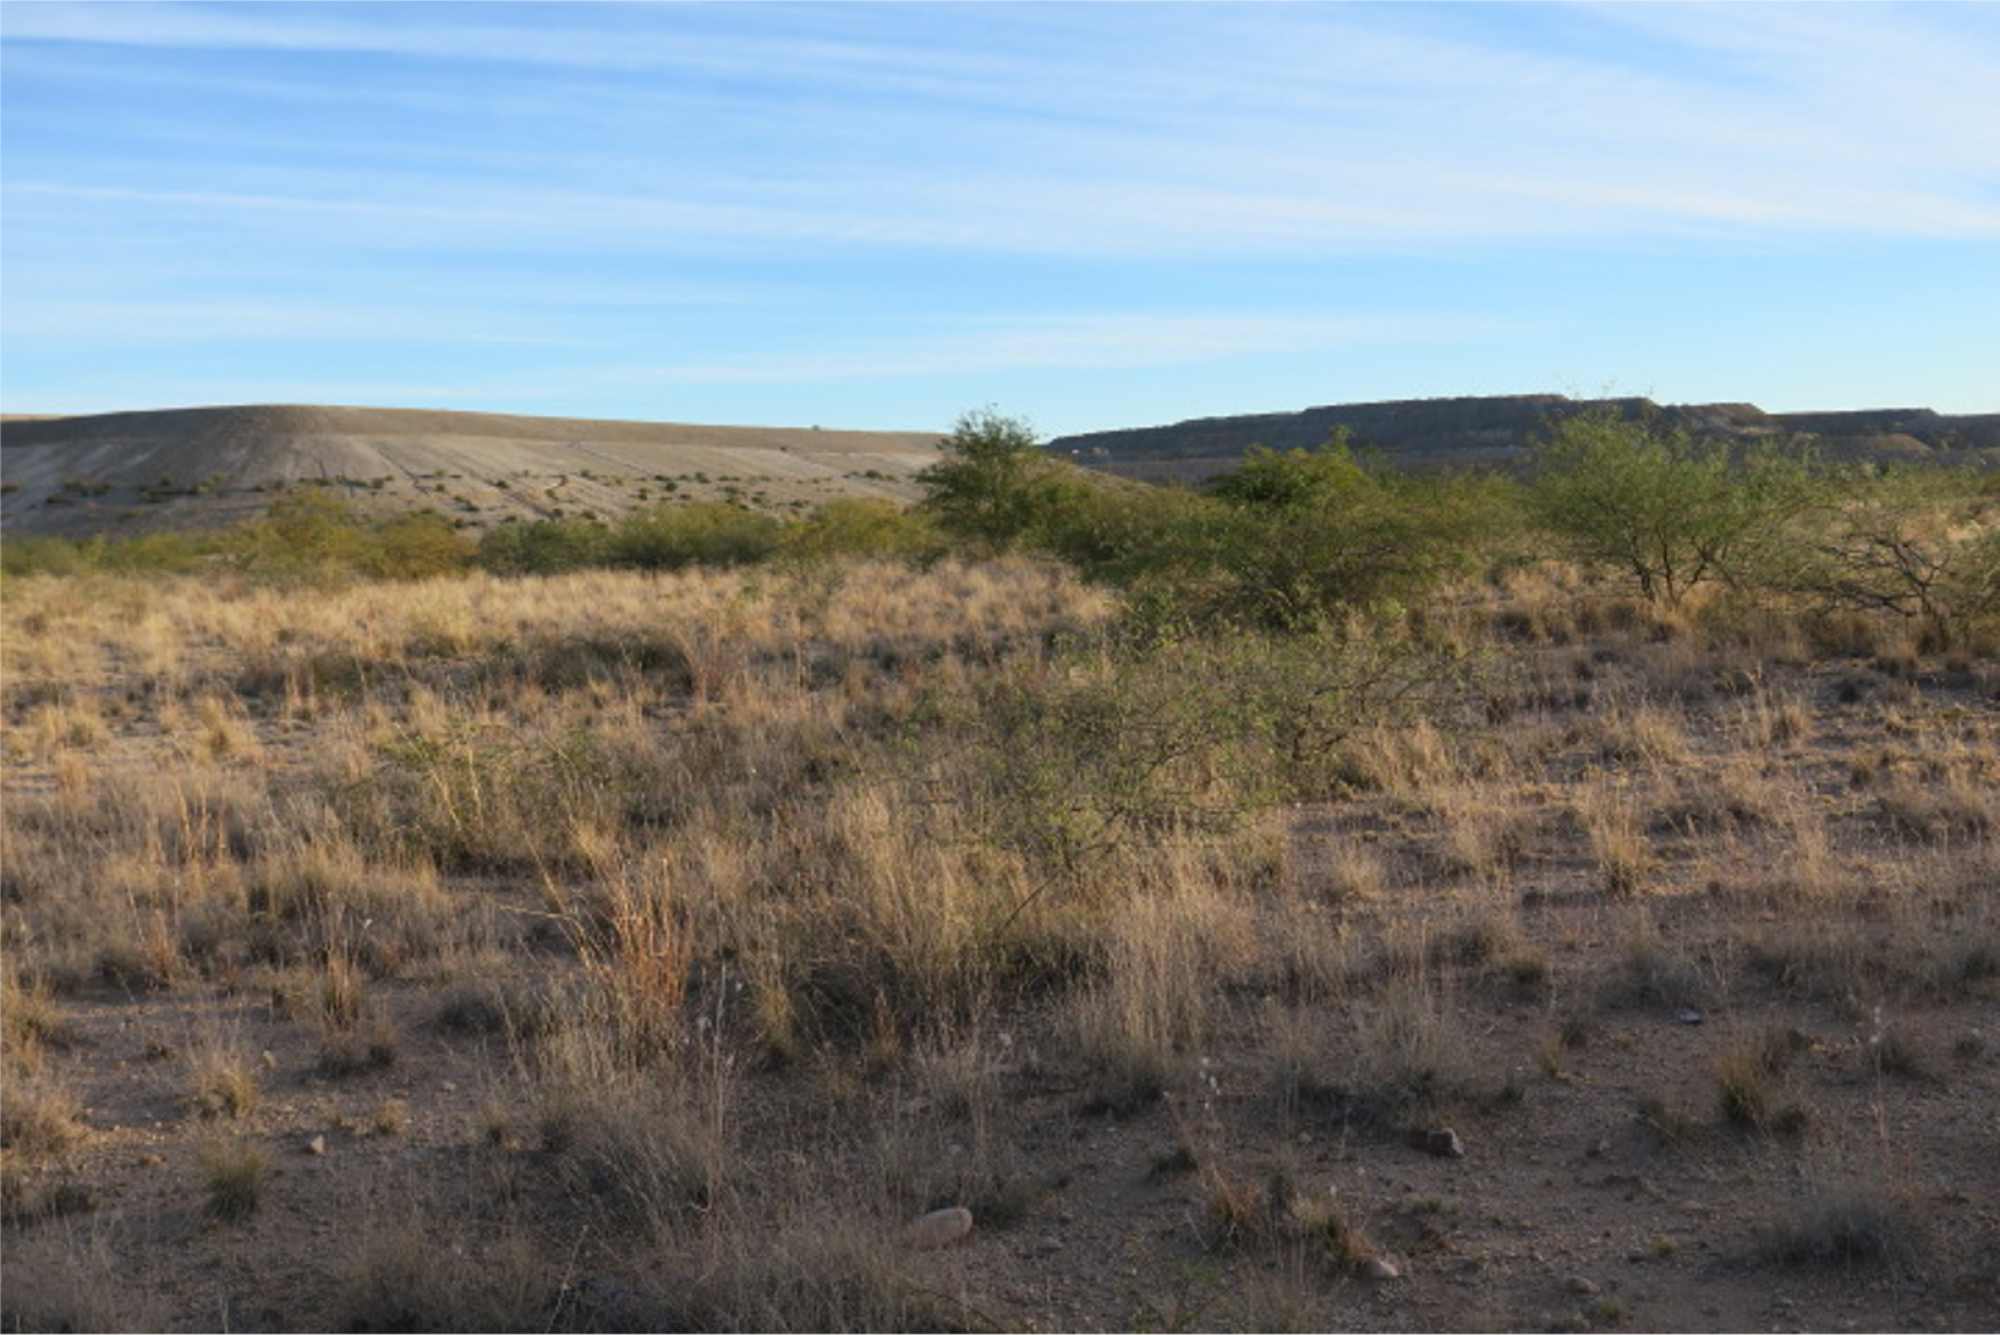 Photo of revegetated tailings facility with grasses and mesquites/acacias.